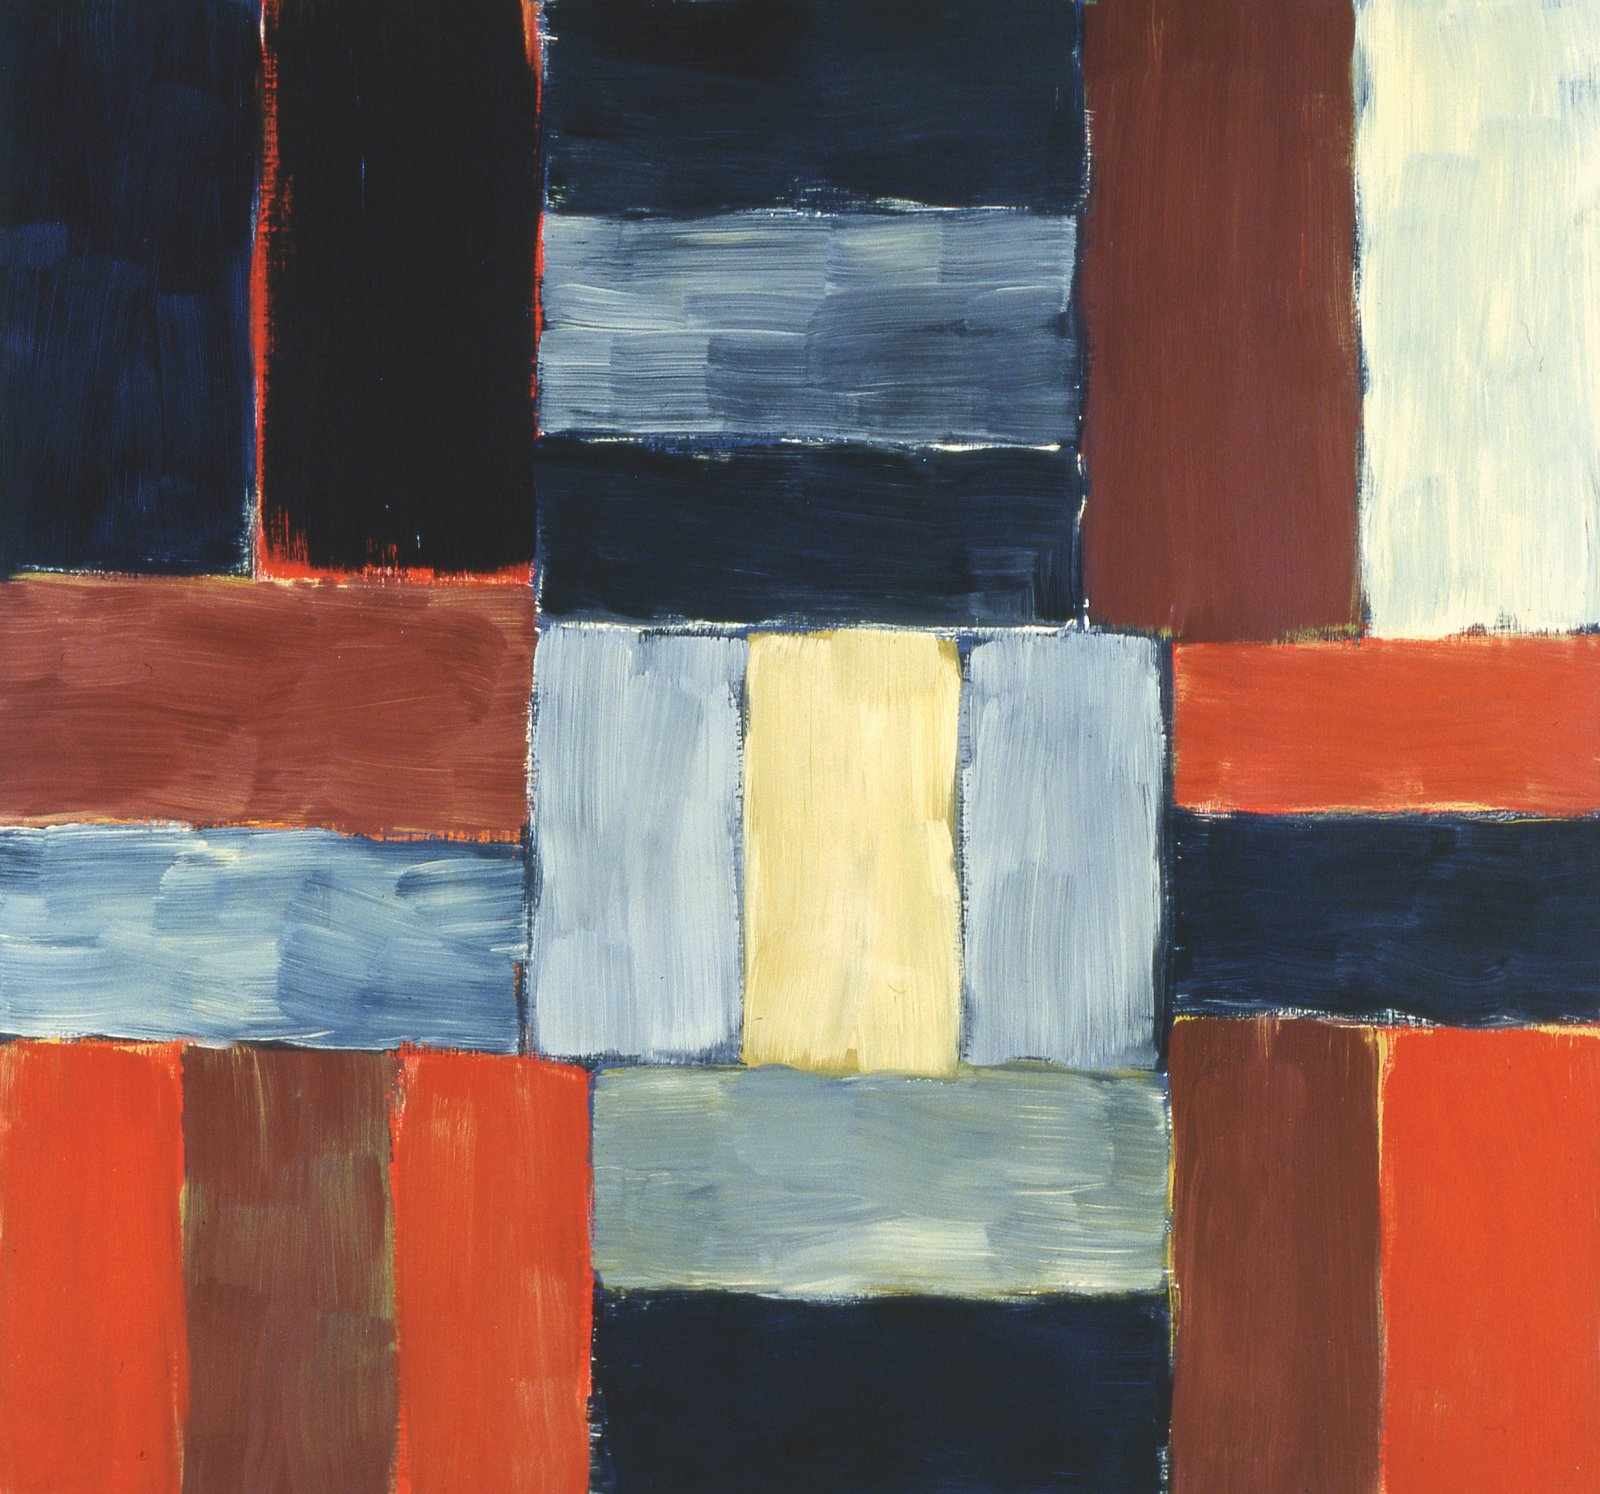 Wall of light (1999) - Sean Scully